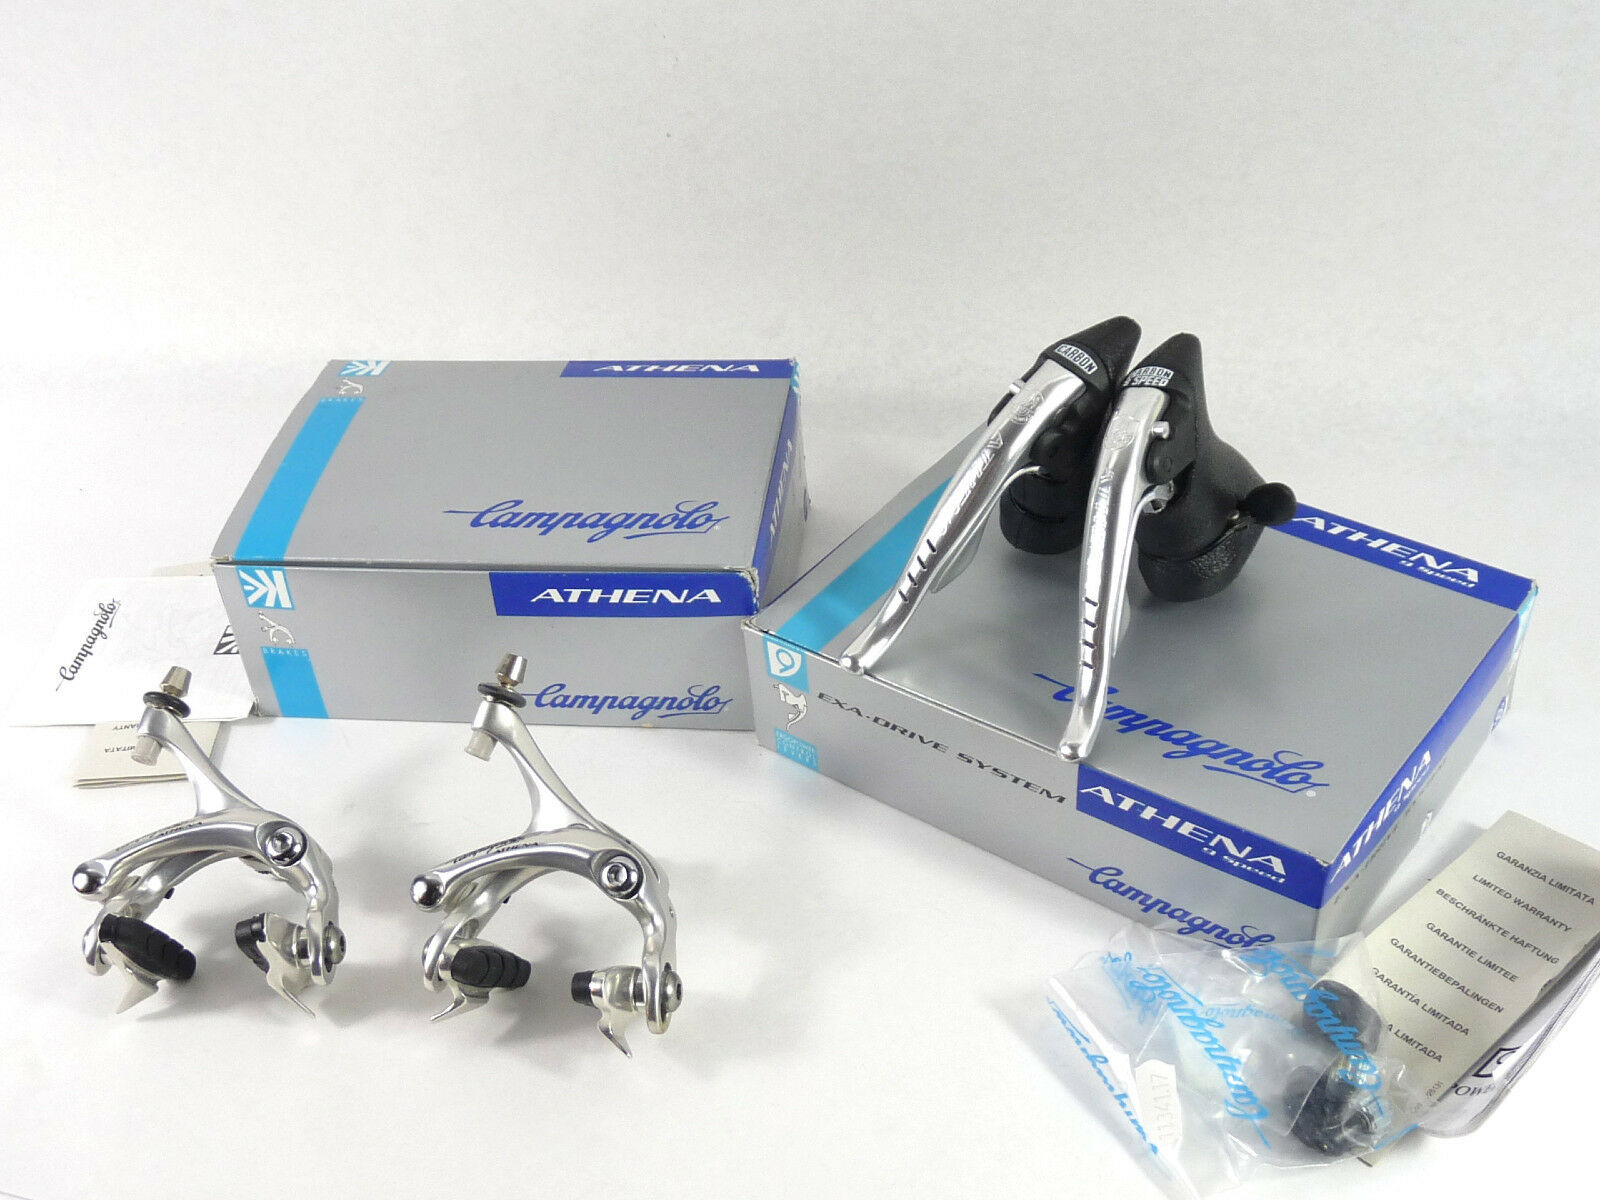 Campagnolo 9  Speed Athena Ergopower shifters & Brake Caliper Set 1998 Alloy NOS  buy cheap new